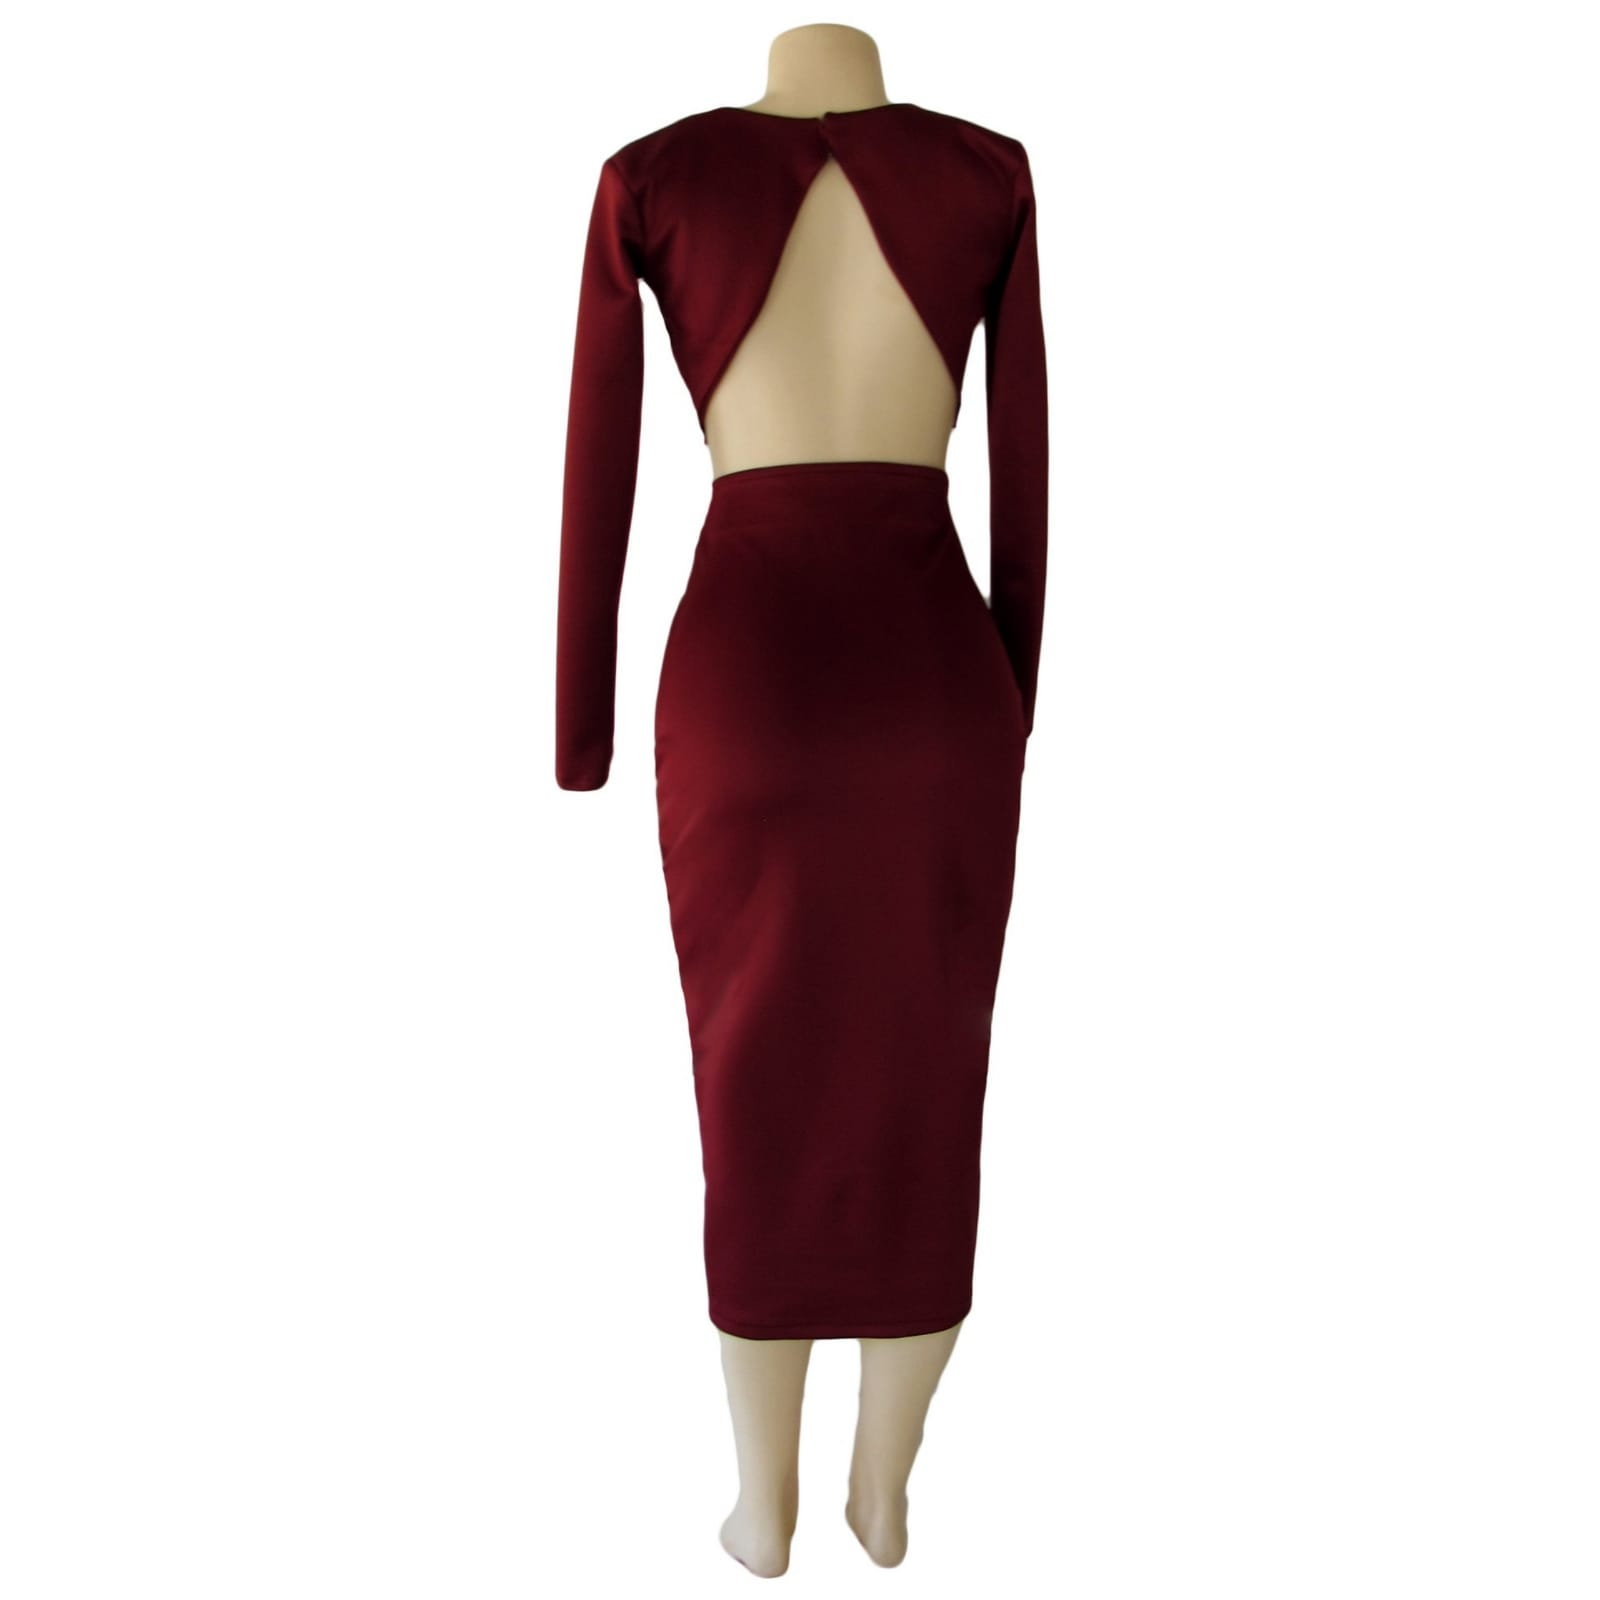 2 piece maroon tight fitting smart casual outfit 5 2 piece maroon tight fitting smart casual outfit. With a crop top, long sleeves and 3/4 length tight fitting skirt